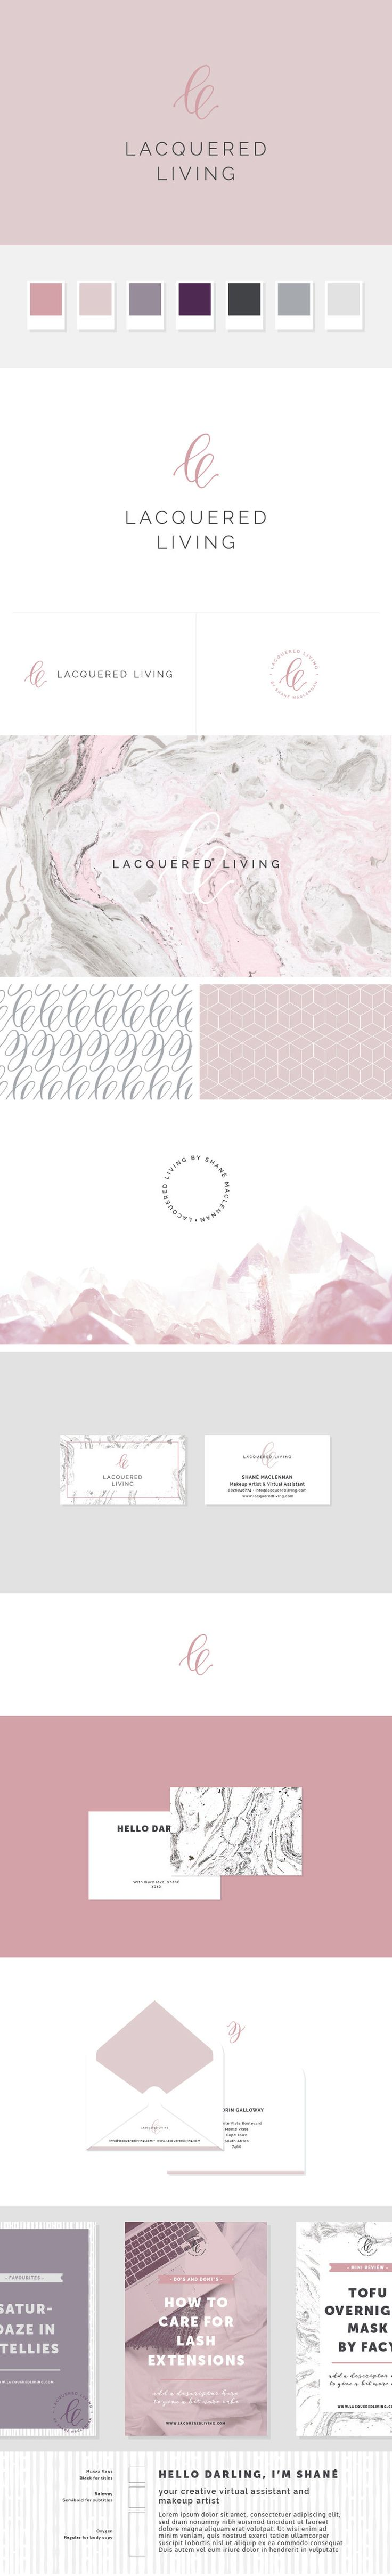 Lacquered Living Cape Town based Virtual Assistant brand styling and design by Freckled Design Studio